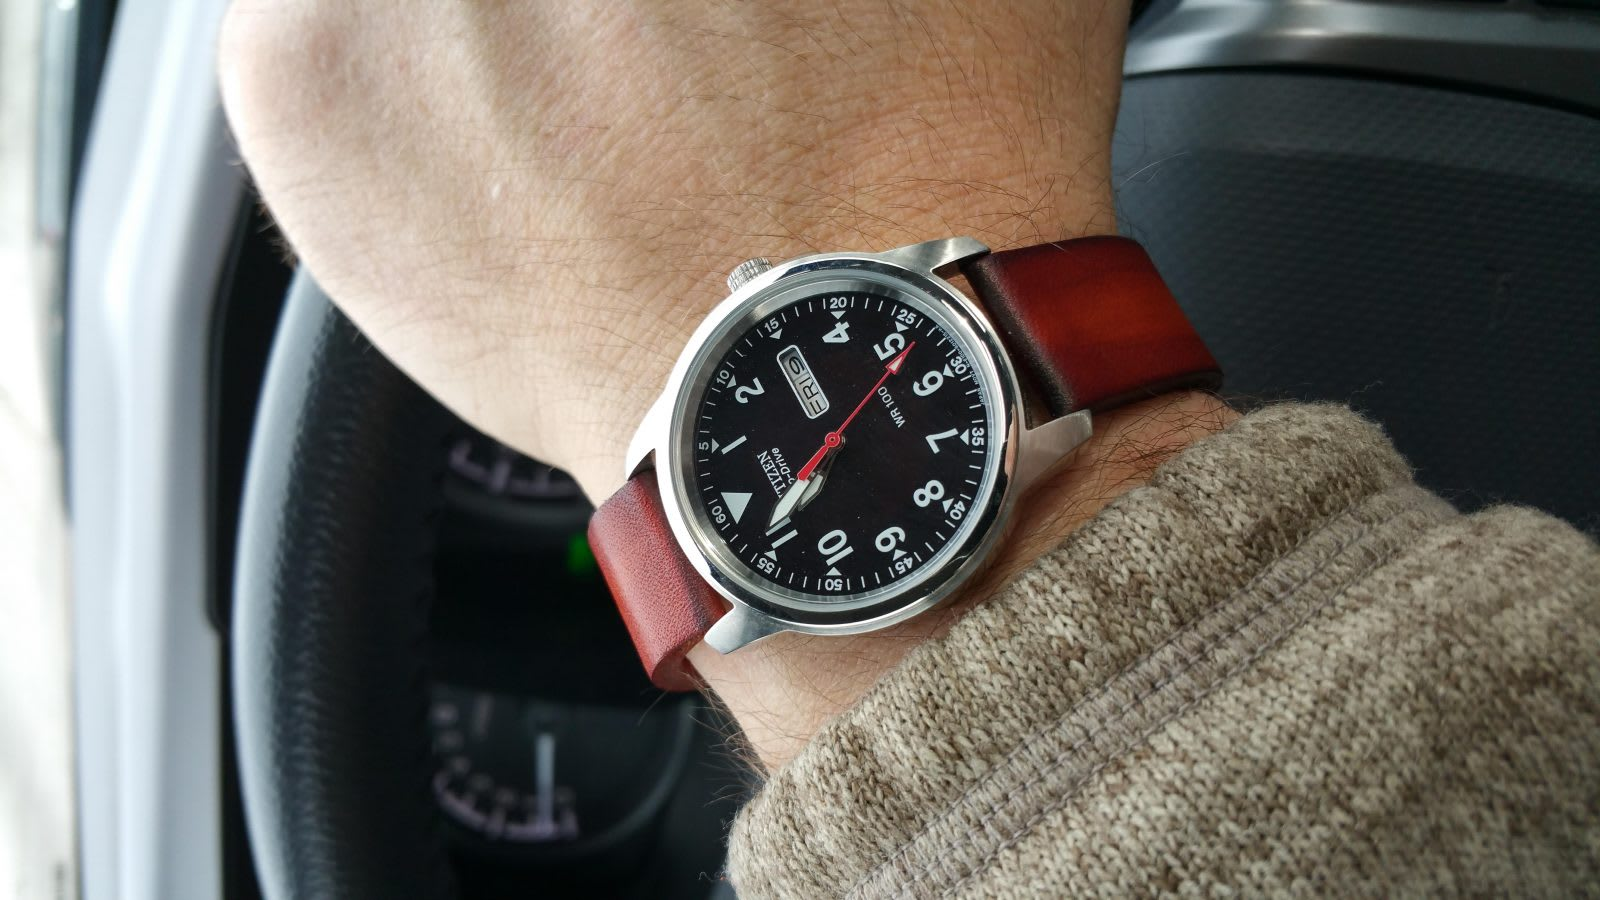 Citizen watch with brown strap